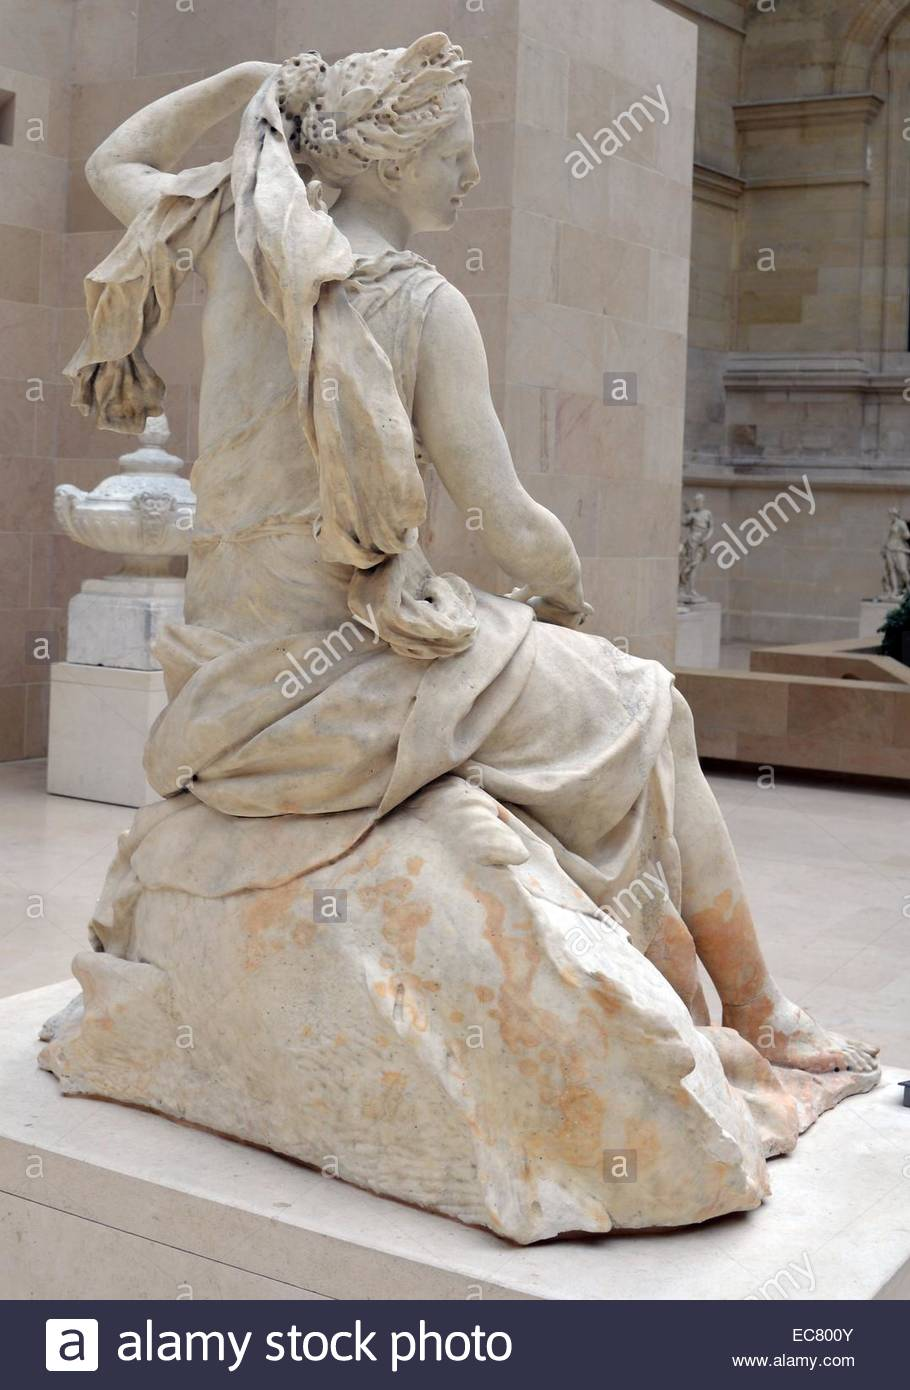 Marble Statue Of Amphitrite, Wife Of Poseidon By Charles Antoine.